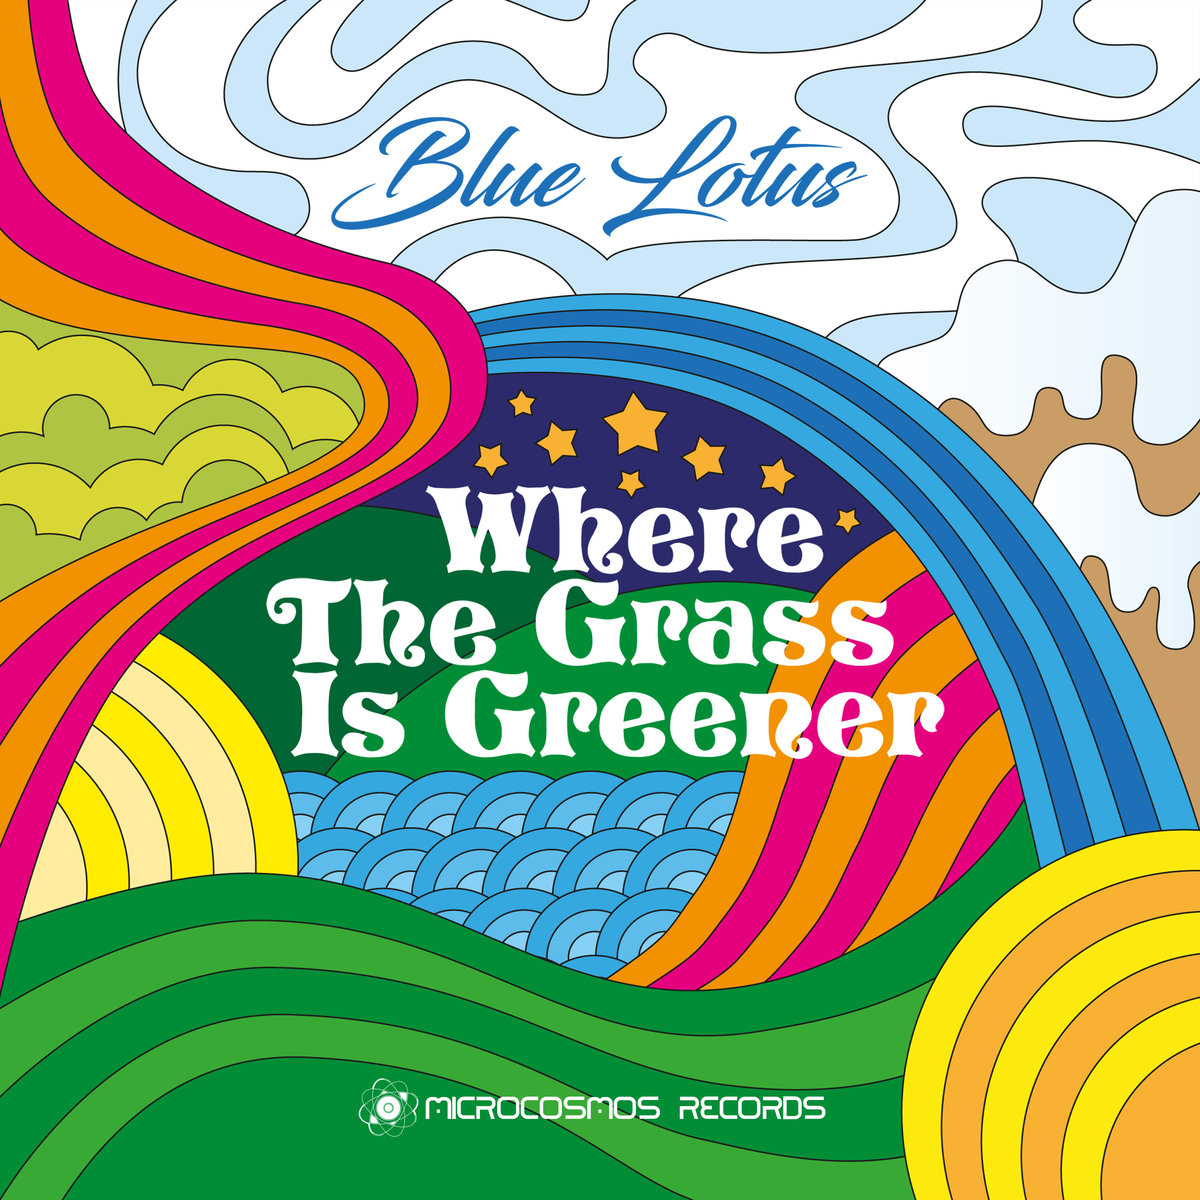 Blue Lotus - Immersion @ 'Where The Grass Is Greener' album (ambient, chill-out)